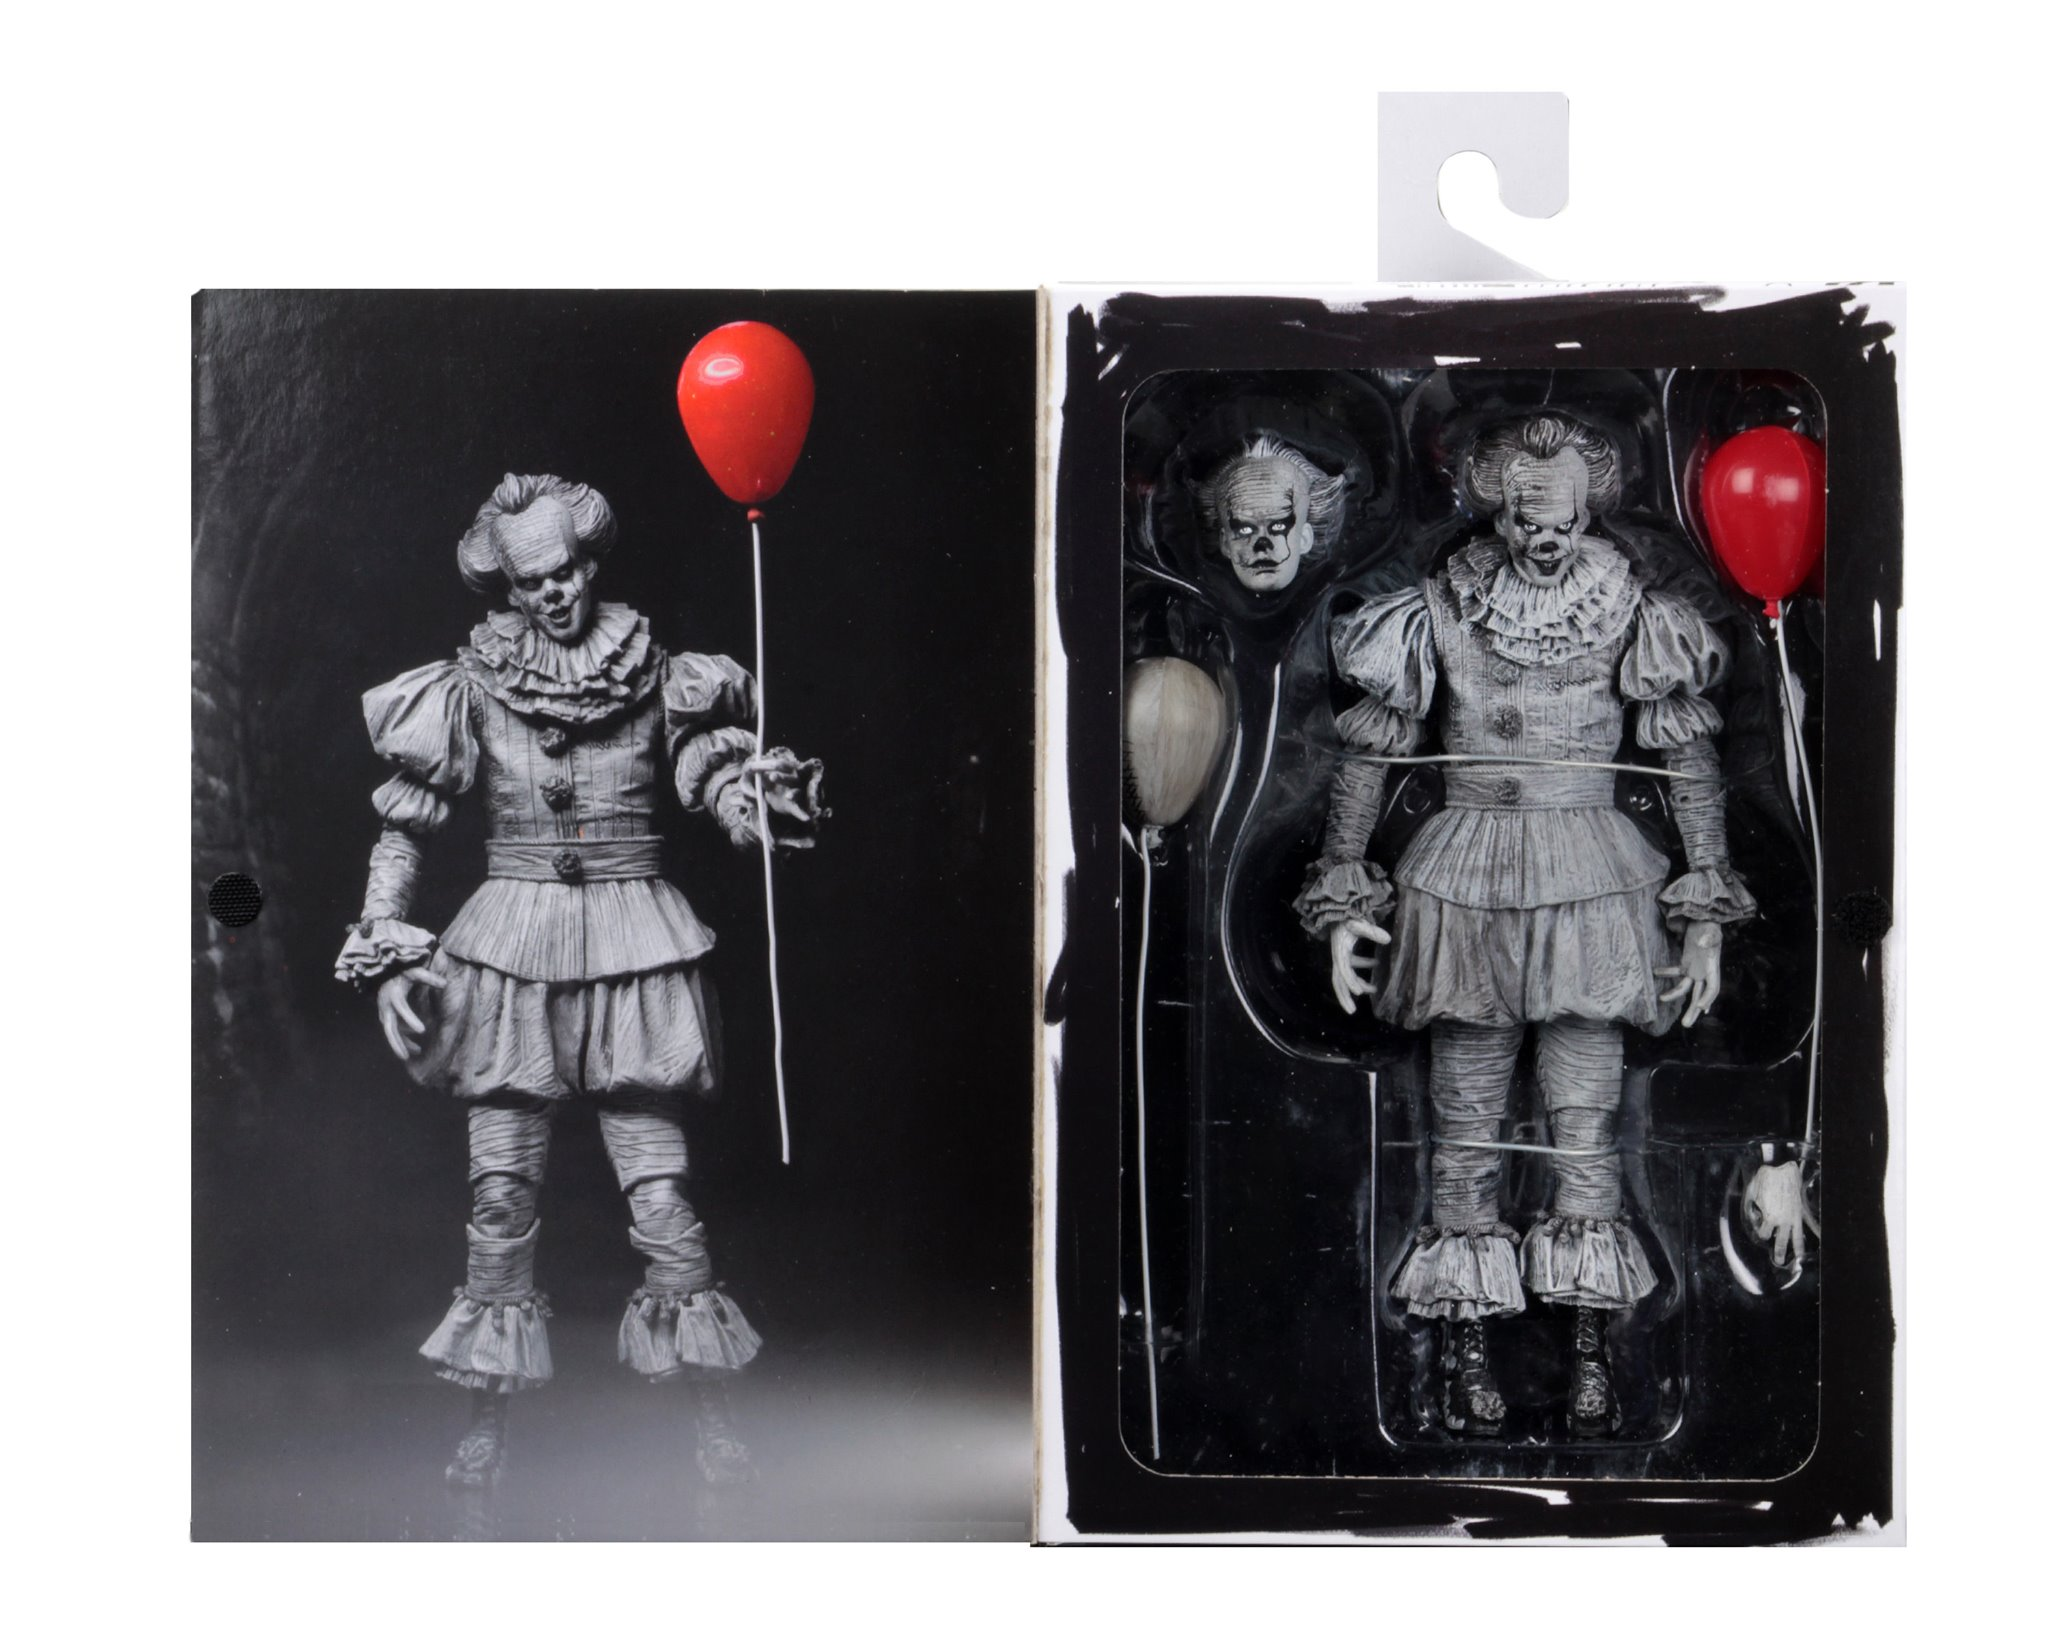 8eca Pennywise Sdcc 2019 07